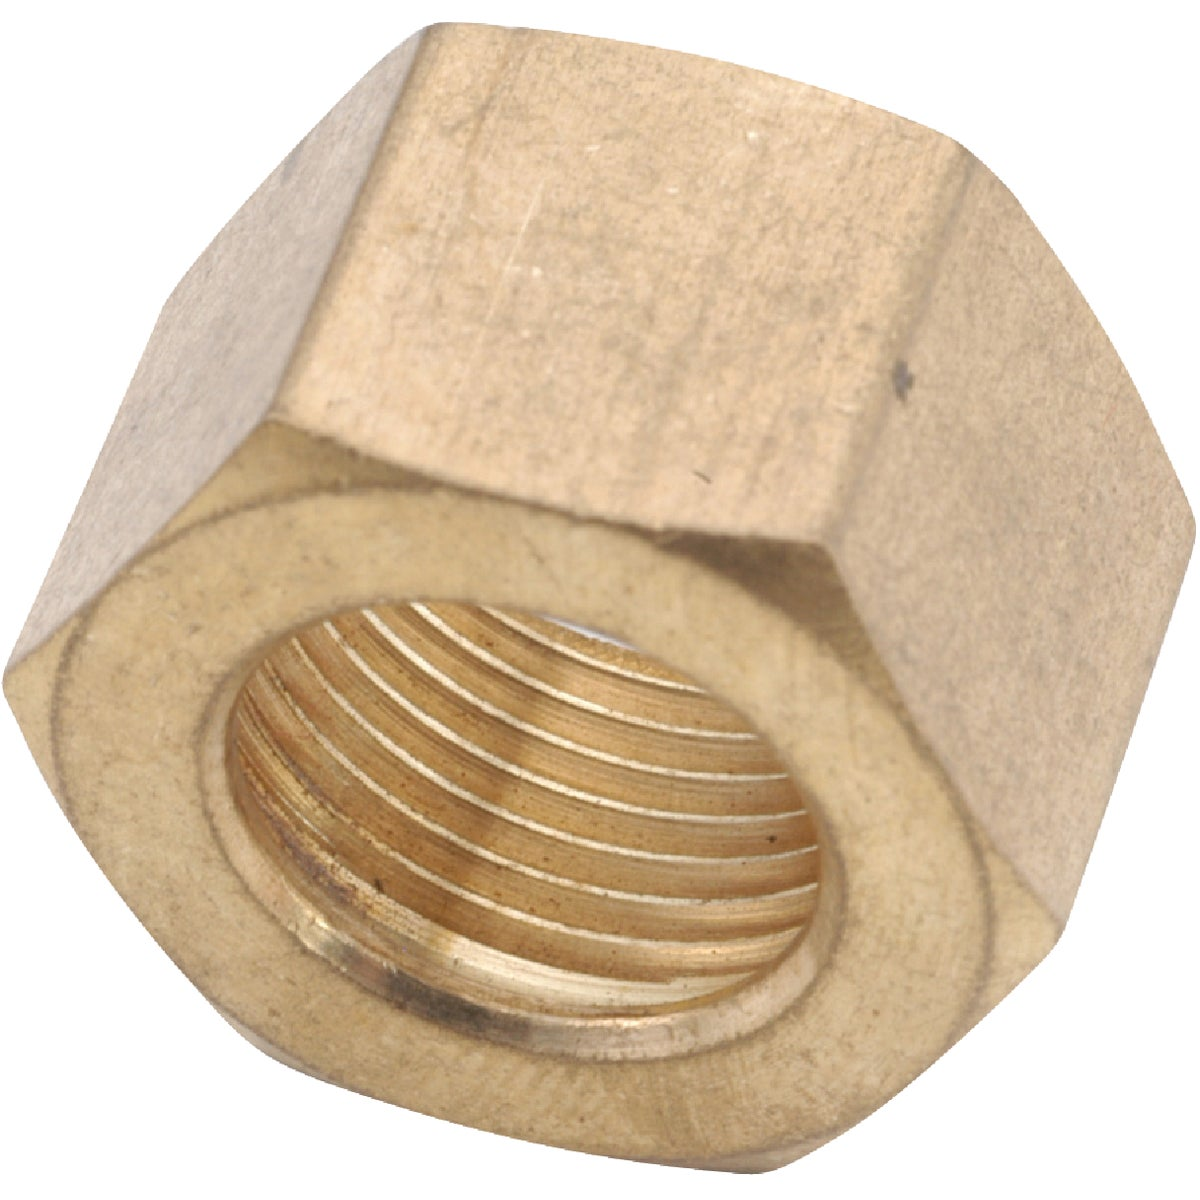 "3/4"" COMPRESSION NUT - 30061-12 by Anderson Metals Corp"